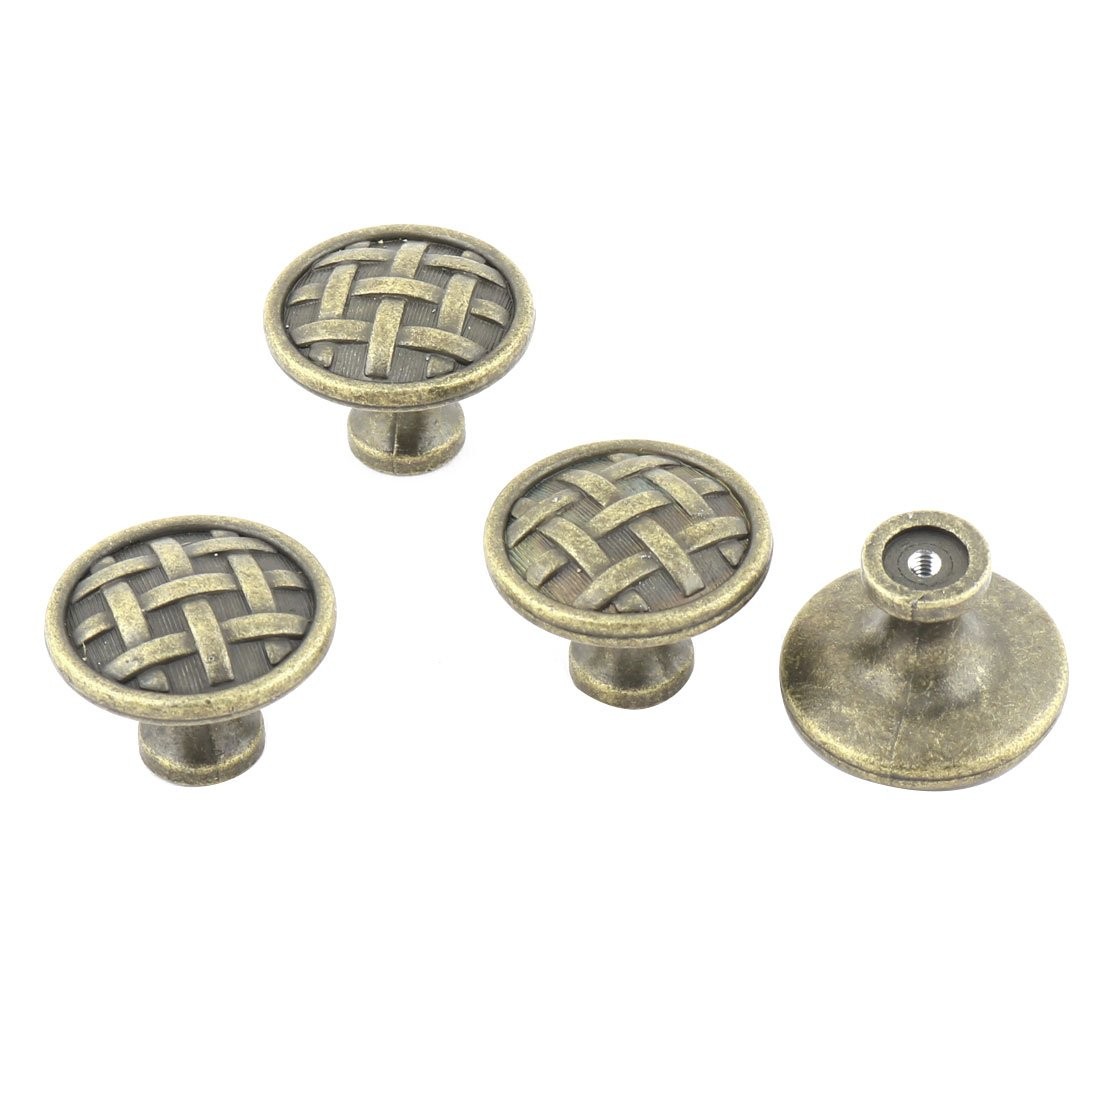 uxcell Metal Home Round Shape Drawer Cupboard Door Handle Pull Knob 4 Pcs Bronze Tone